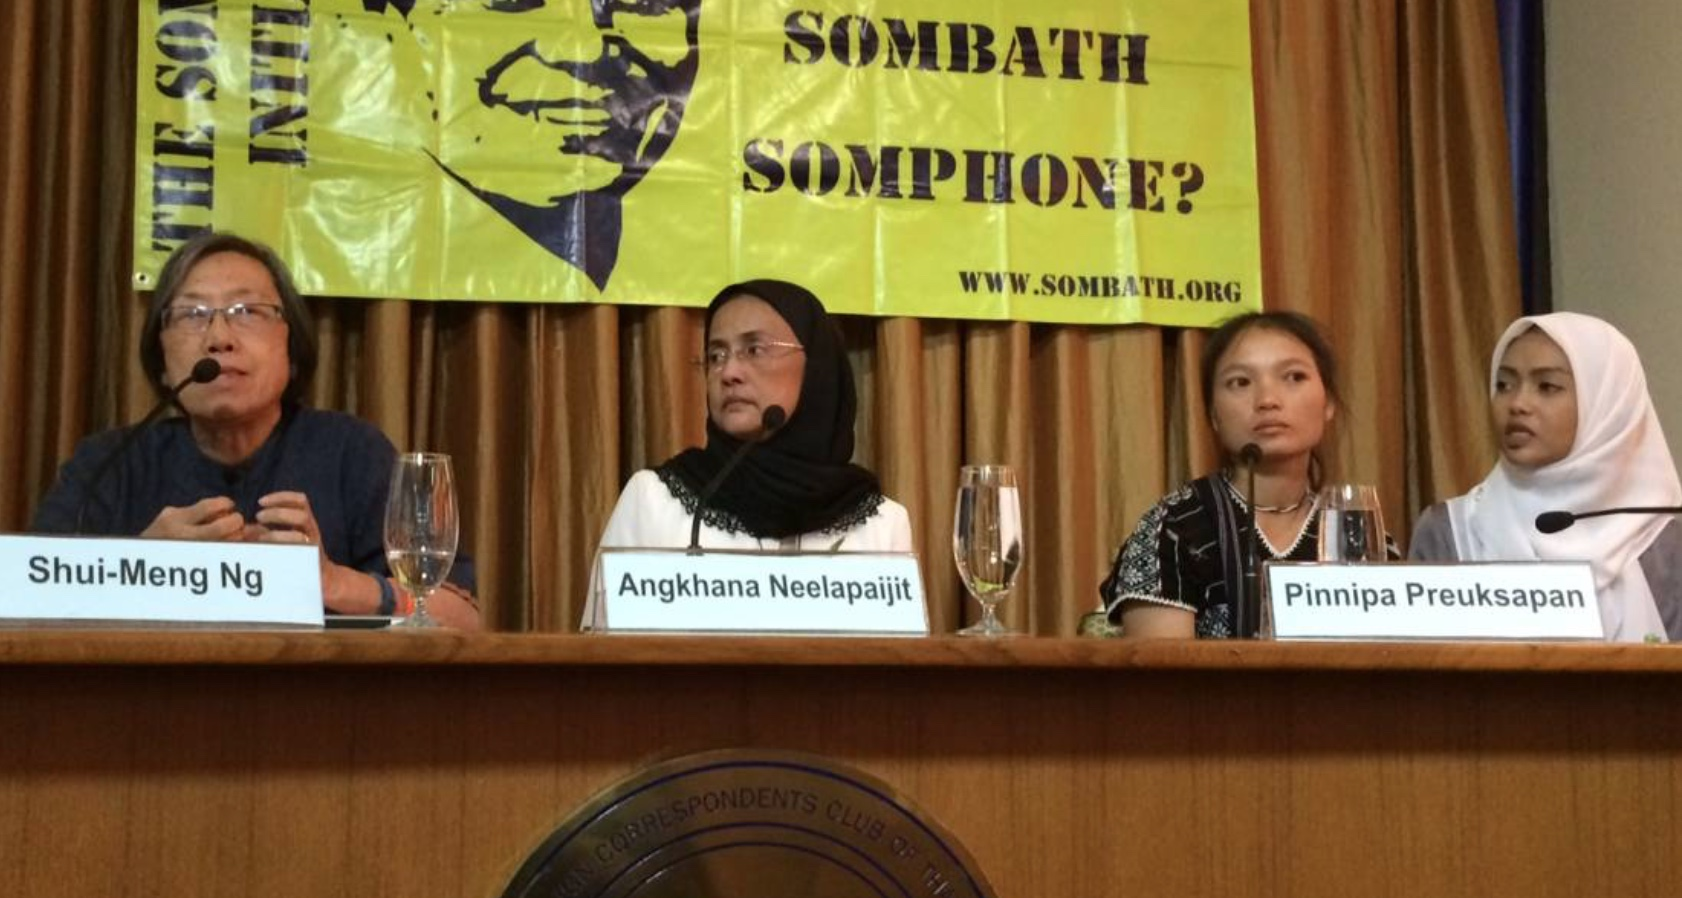 Wives of missing Thai, Lao activists seek action over disappearances